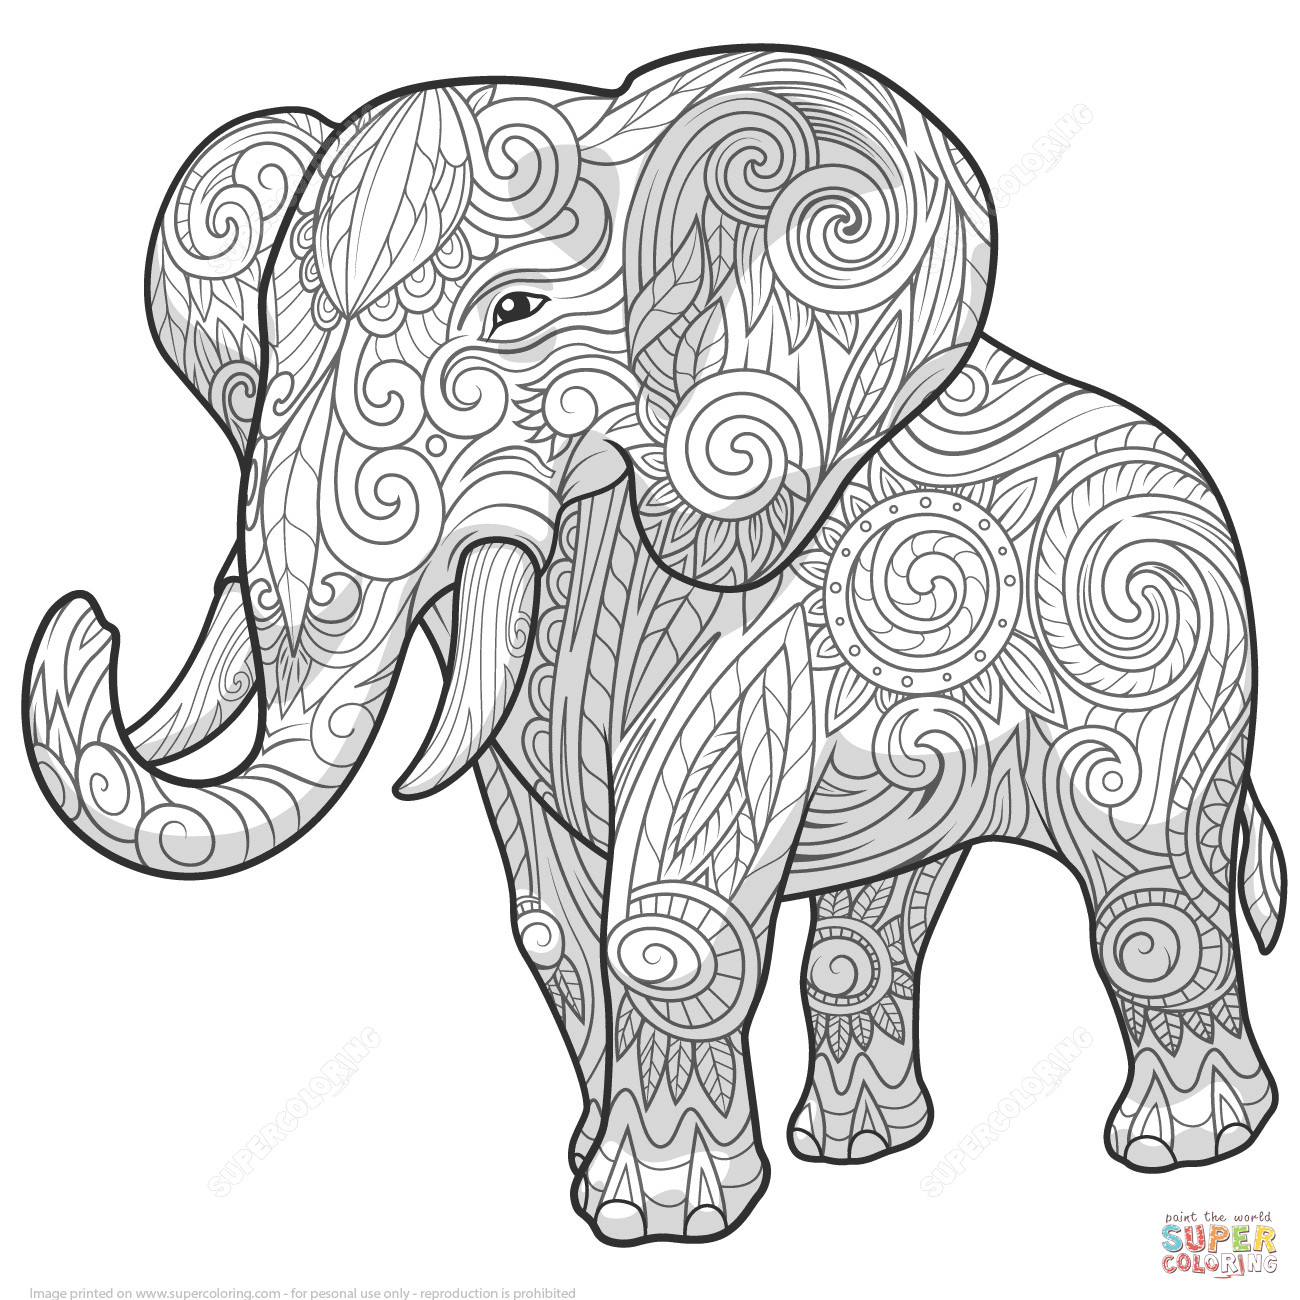 Best ideas about Free Printable Coloring Pages For Adults Hard That Are Zentangles . Save or Pin Zentangle Coloring Pages Now.